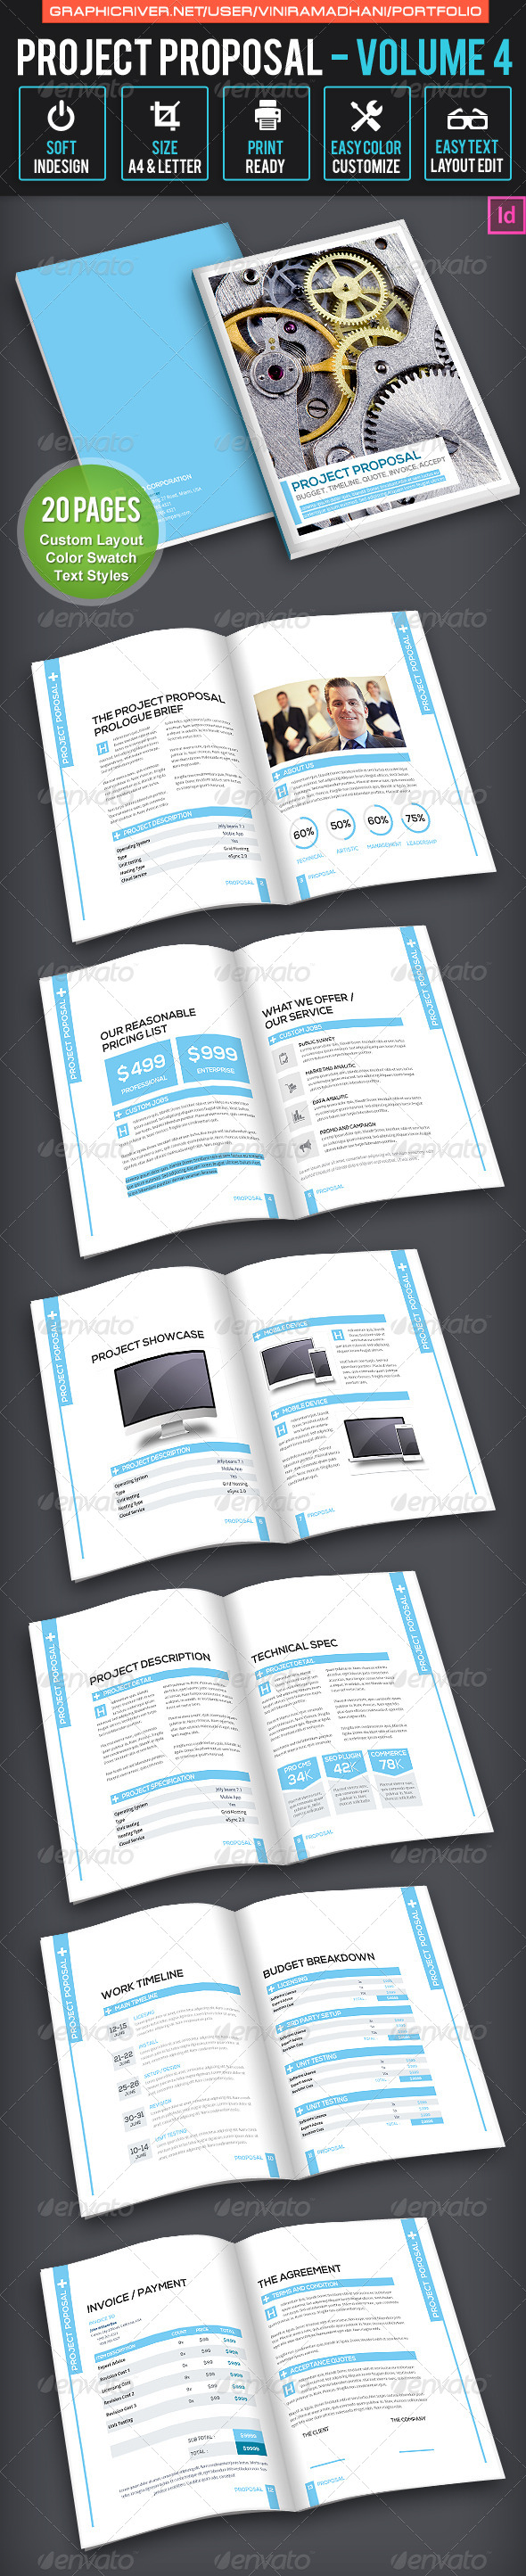 GraphicRiver Project Proposal Volume 4 7022050